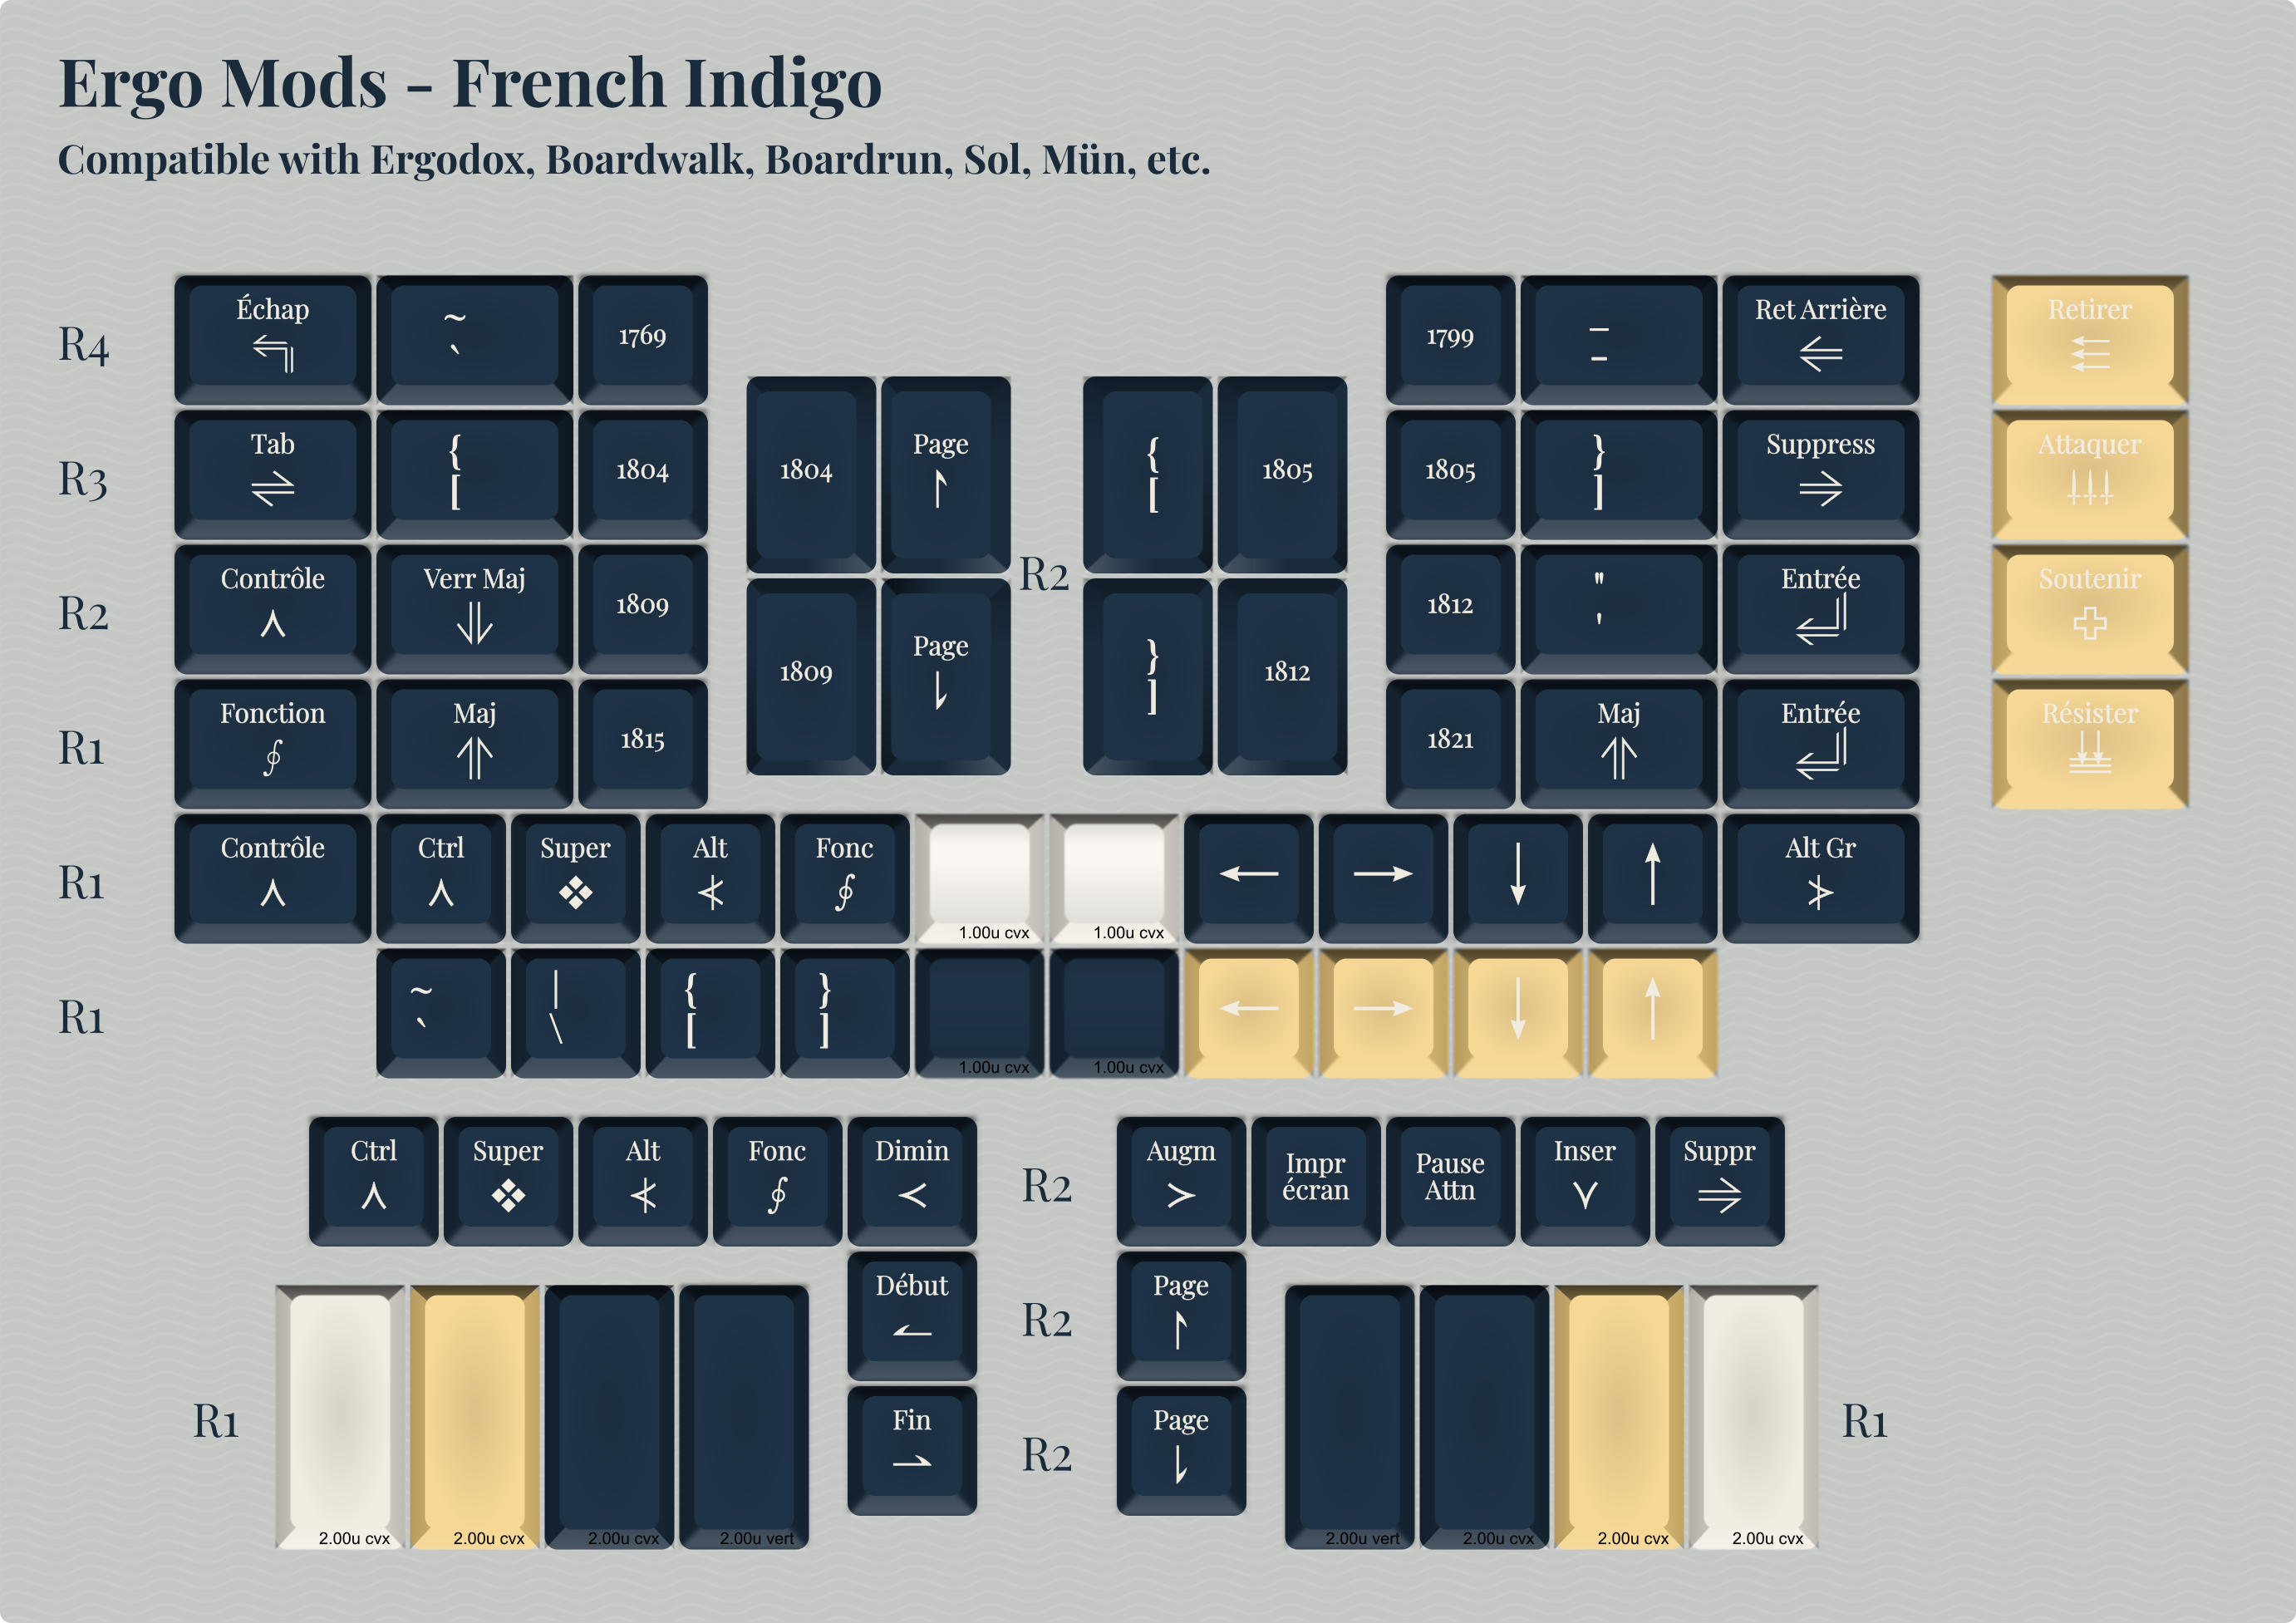 Ergo Mods (French Indigo)